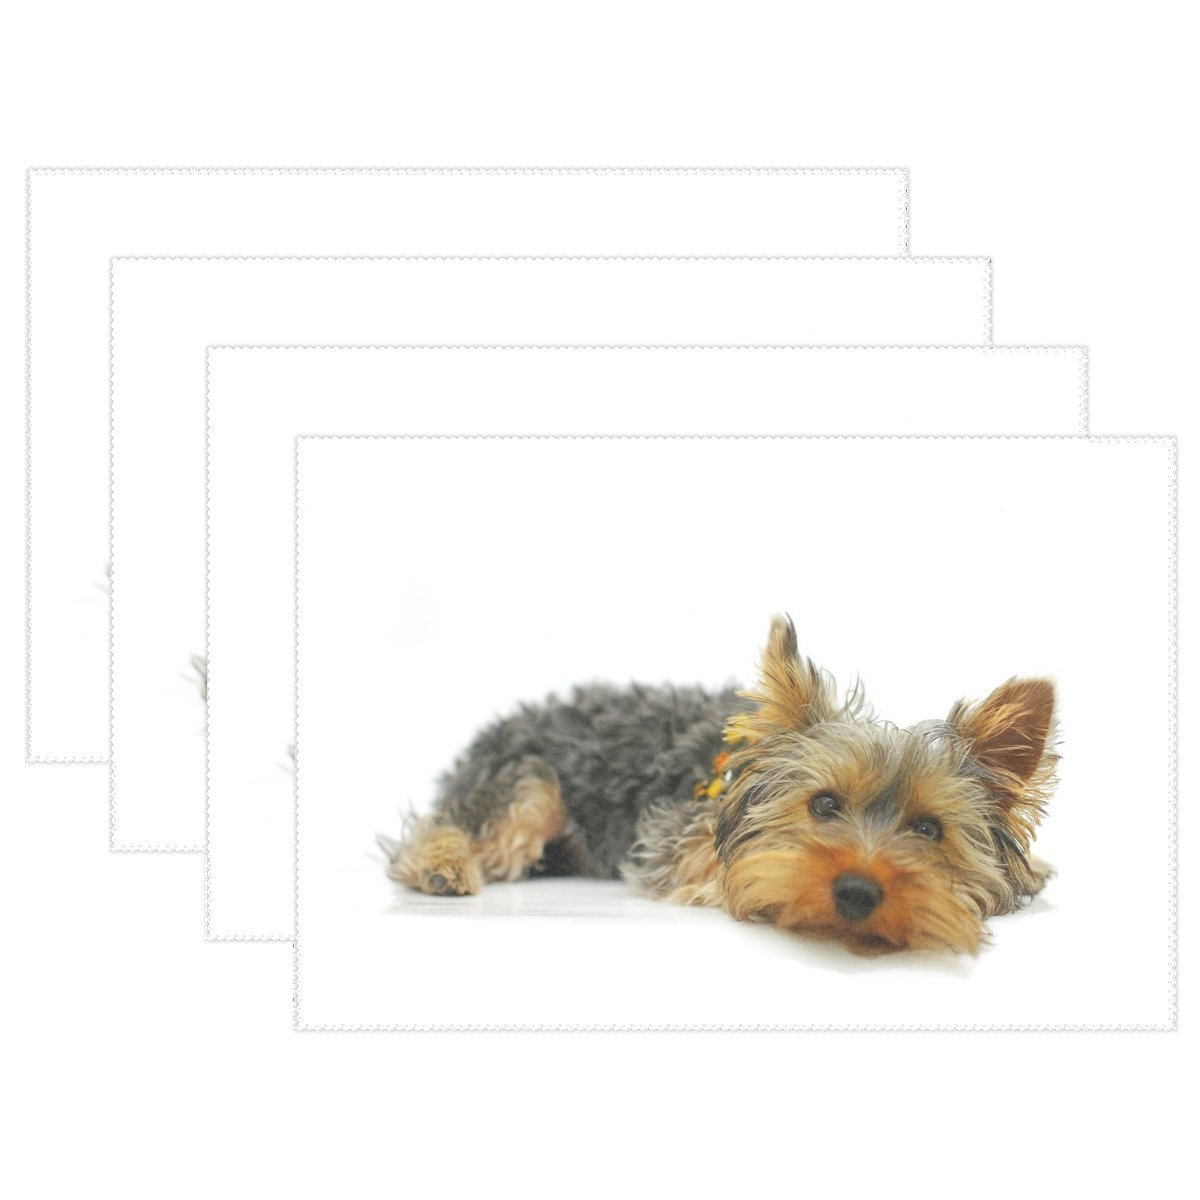 QYUESHANG Animal Dog Yorkshire Terrier Yellow Black Mix Pet Small Fluffy Heat-resistant Table Placemats Set Of 4 Stain Resistant Table Mats Washable Eat Mat Home Dinner Decorative